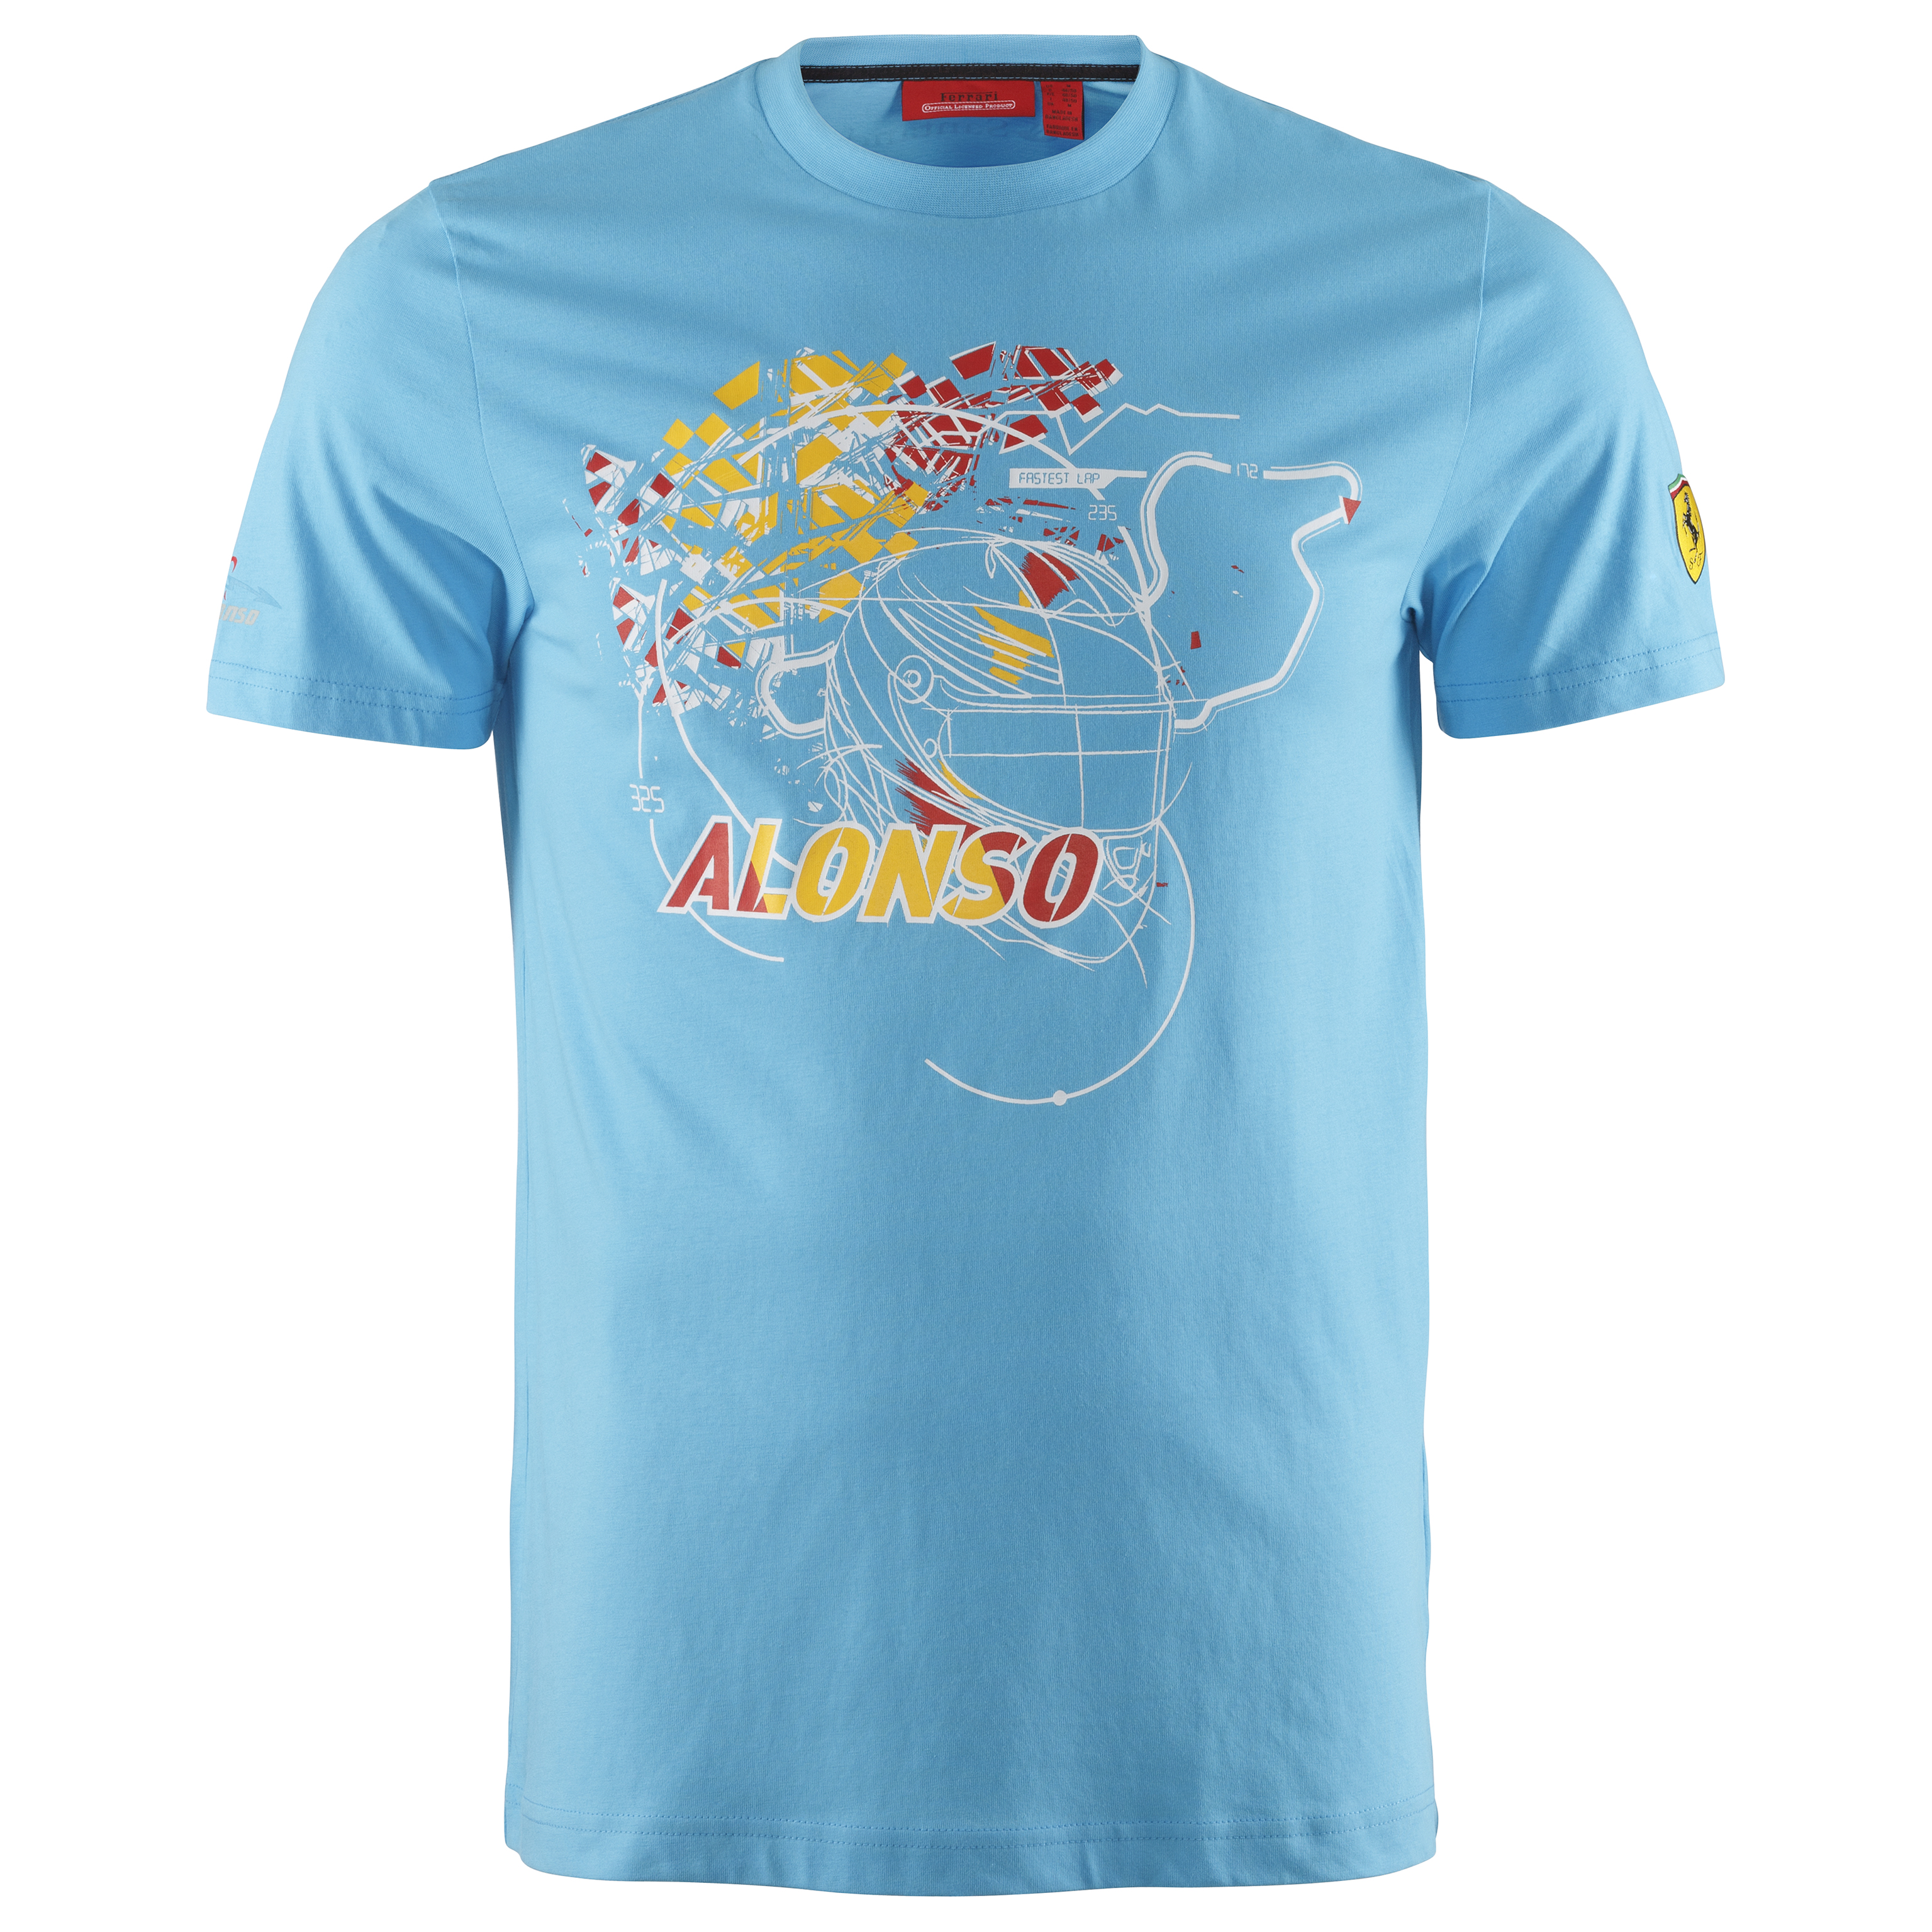 Scuderia Ferrari Alonso T-Shirt - Blue